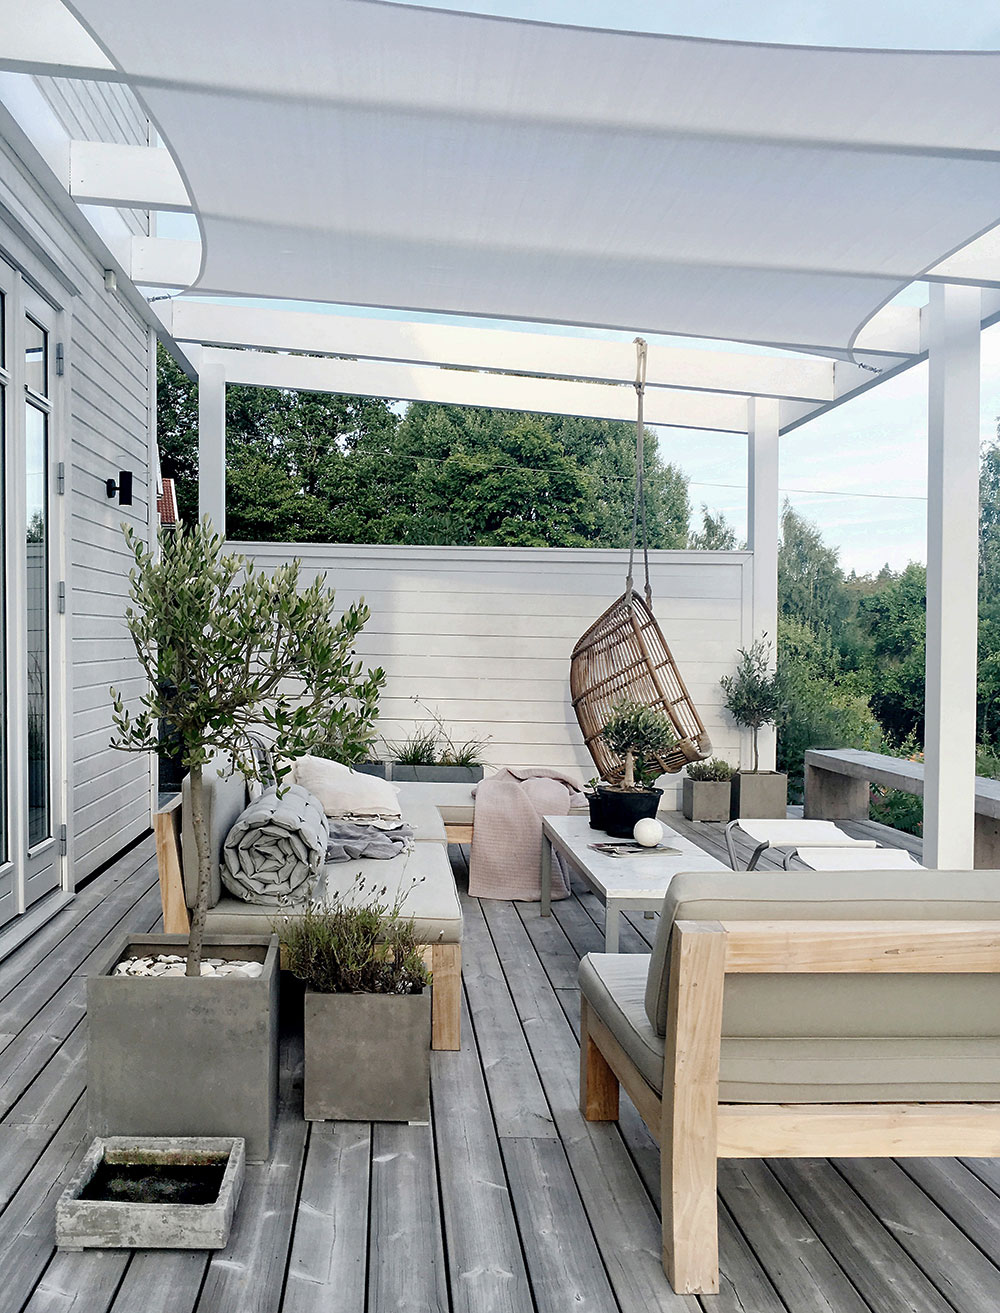 3. - Sunshade over the patio via Elle Decoration